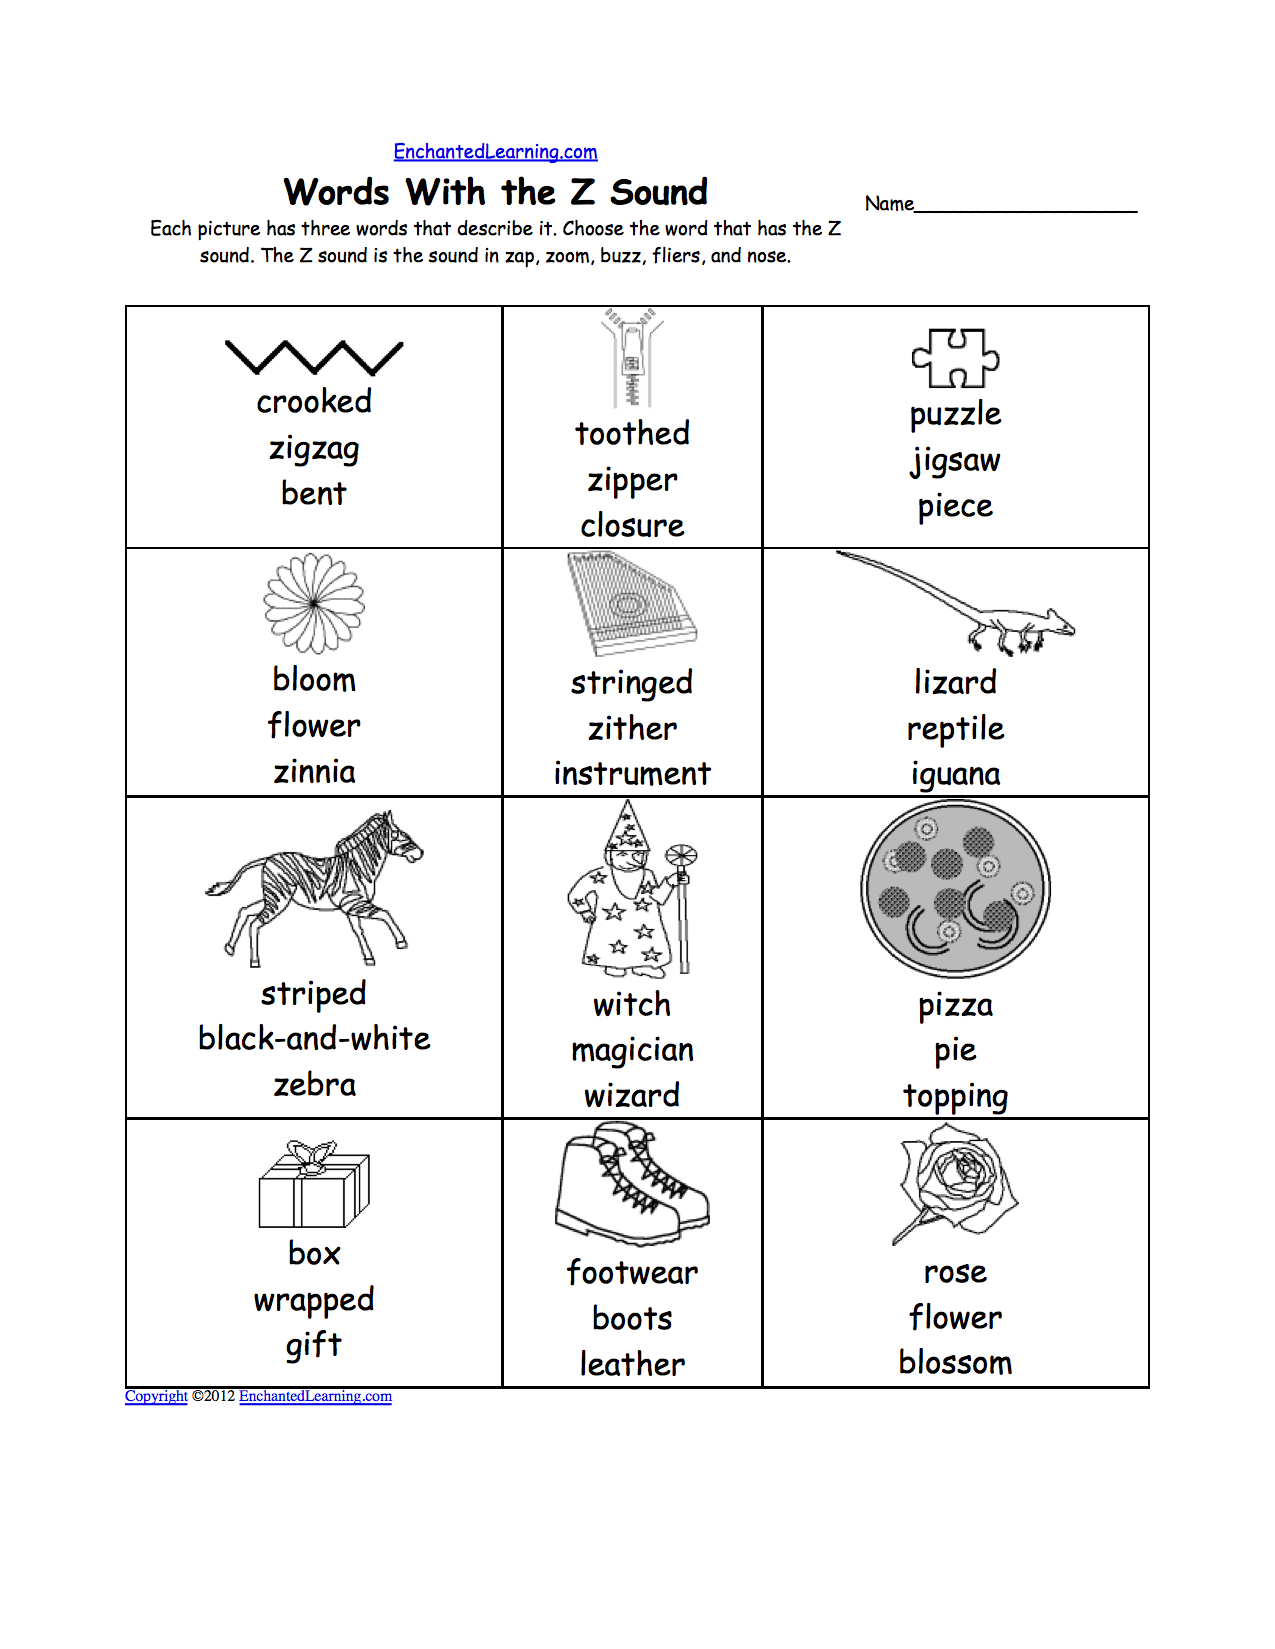 Weirdmailus  Picturesque Phonics Worksheets Multiple Choice Worksheets To Print  With Likable Phonics Worksheets Multiple Choice Worksheets To Print  Enchantedlearningcom With Enchanting Jolly Phonics Worksheet Also Mab Blocks Worksheets In Addition Alliteration Worksheets For Kids And History Worksheets Ks As Well As Worksheet On Multiplication And Division Additionally Worksheets On Simplifying Expressions From Enchantedlearningcom With Weirdmailus  Likable Phonics Worksheets Multiple Choice Worksheets To Print  With Enchanting Phonics Worksheets Multiple Choice Worksheets To Print  Enchantedlearningcom And Picturesque Jolly Phonics Worksheet Also Mab Blocks Worksheets In Addition Alliteration Worksheets For Kids From Enchantedlearningcom